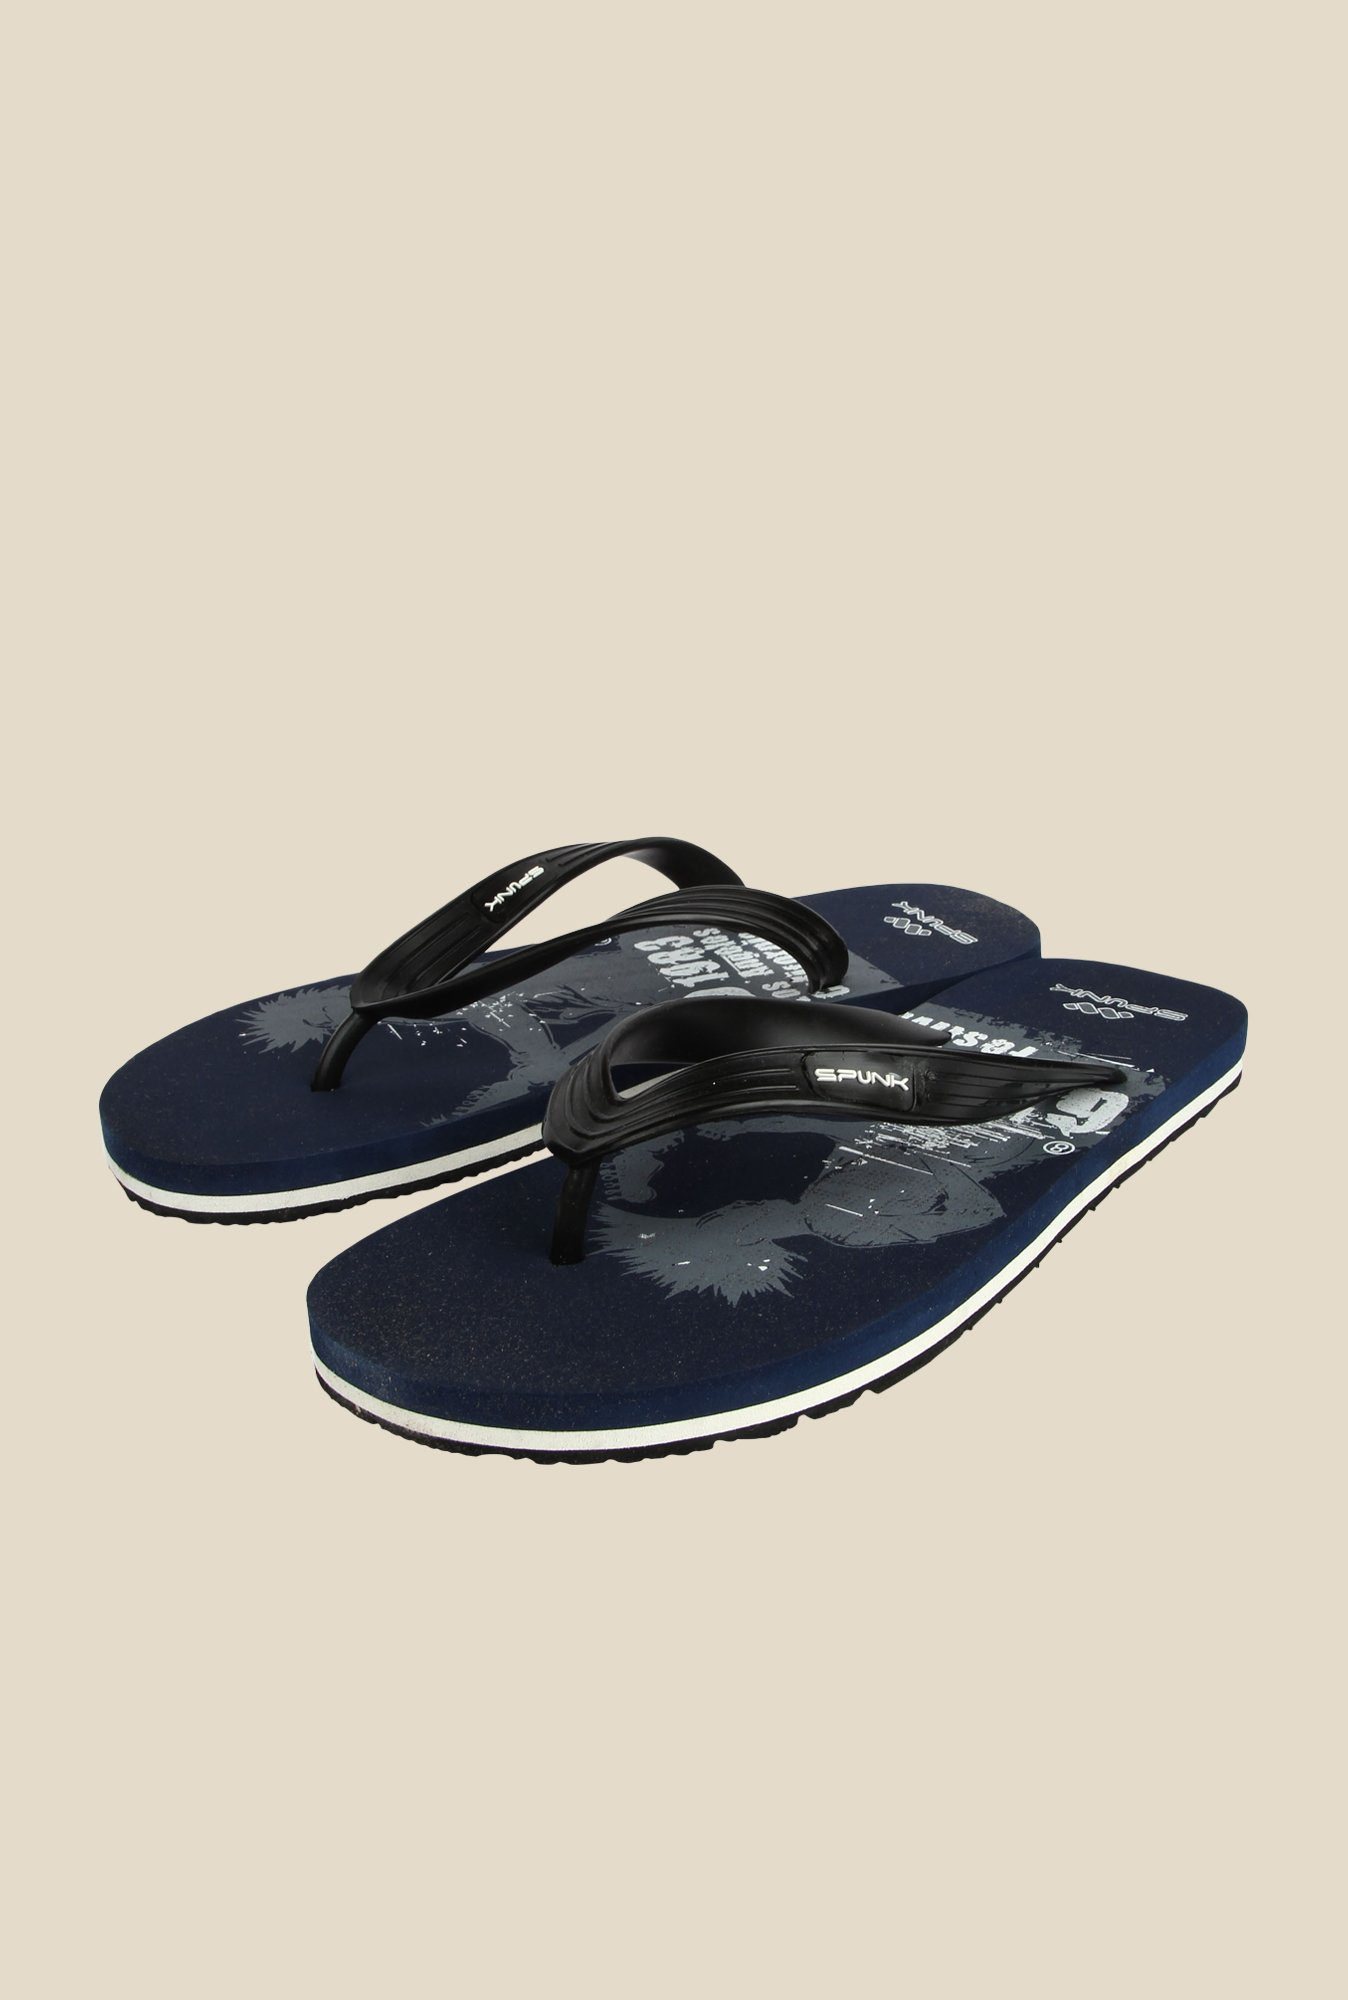 Spunk California Black & Navy Slippers